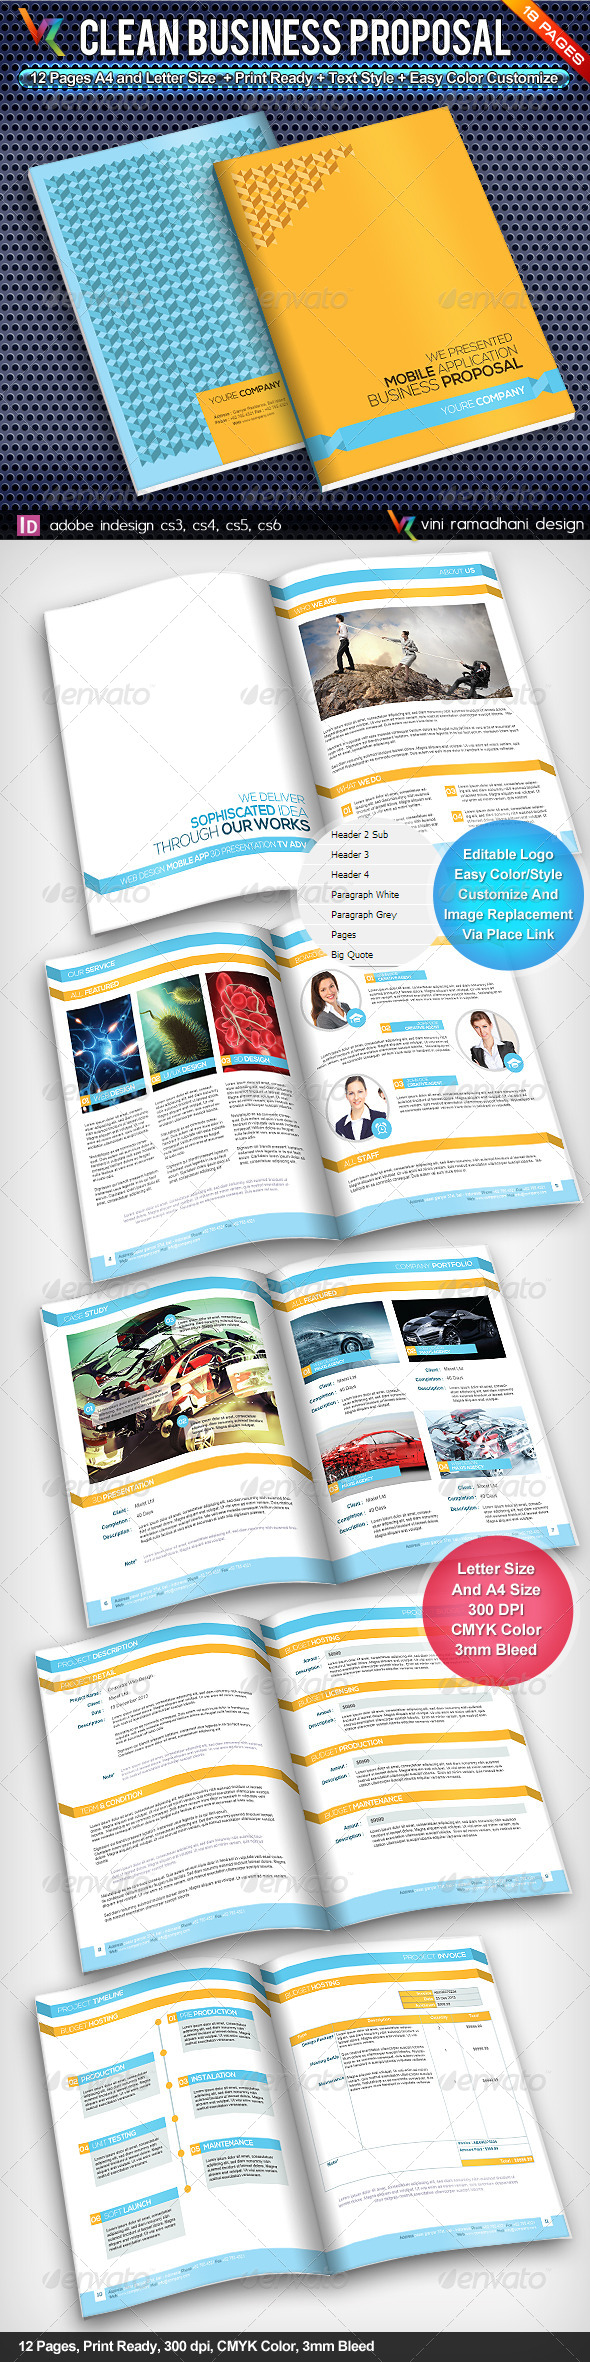 GraphicRiver Clean Business Proposal 4816842